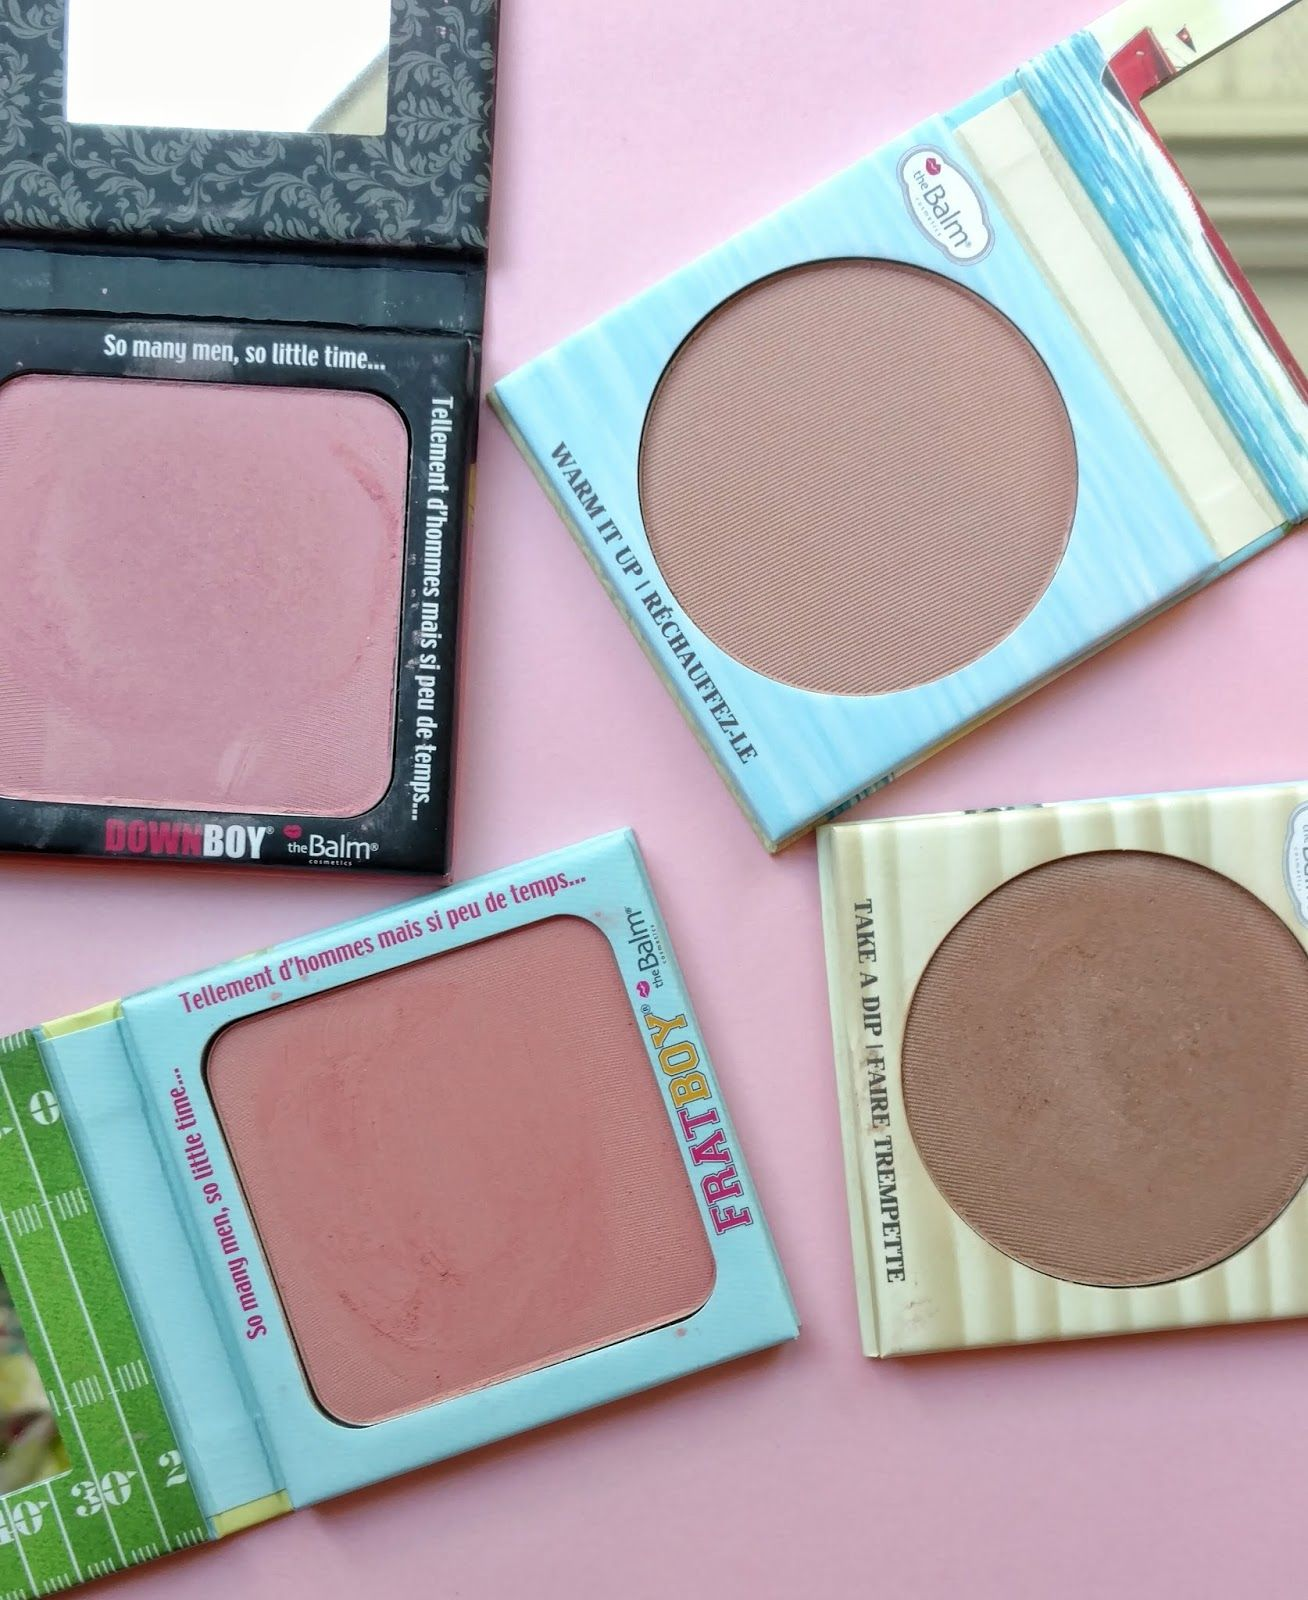 The Balm Balm Beach Long Wearing Blush Review Amp Swatches The Budget Beauty Blog Make Up